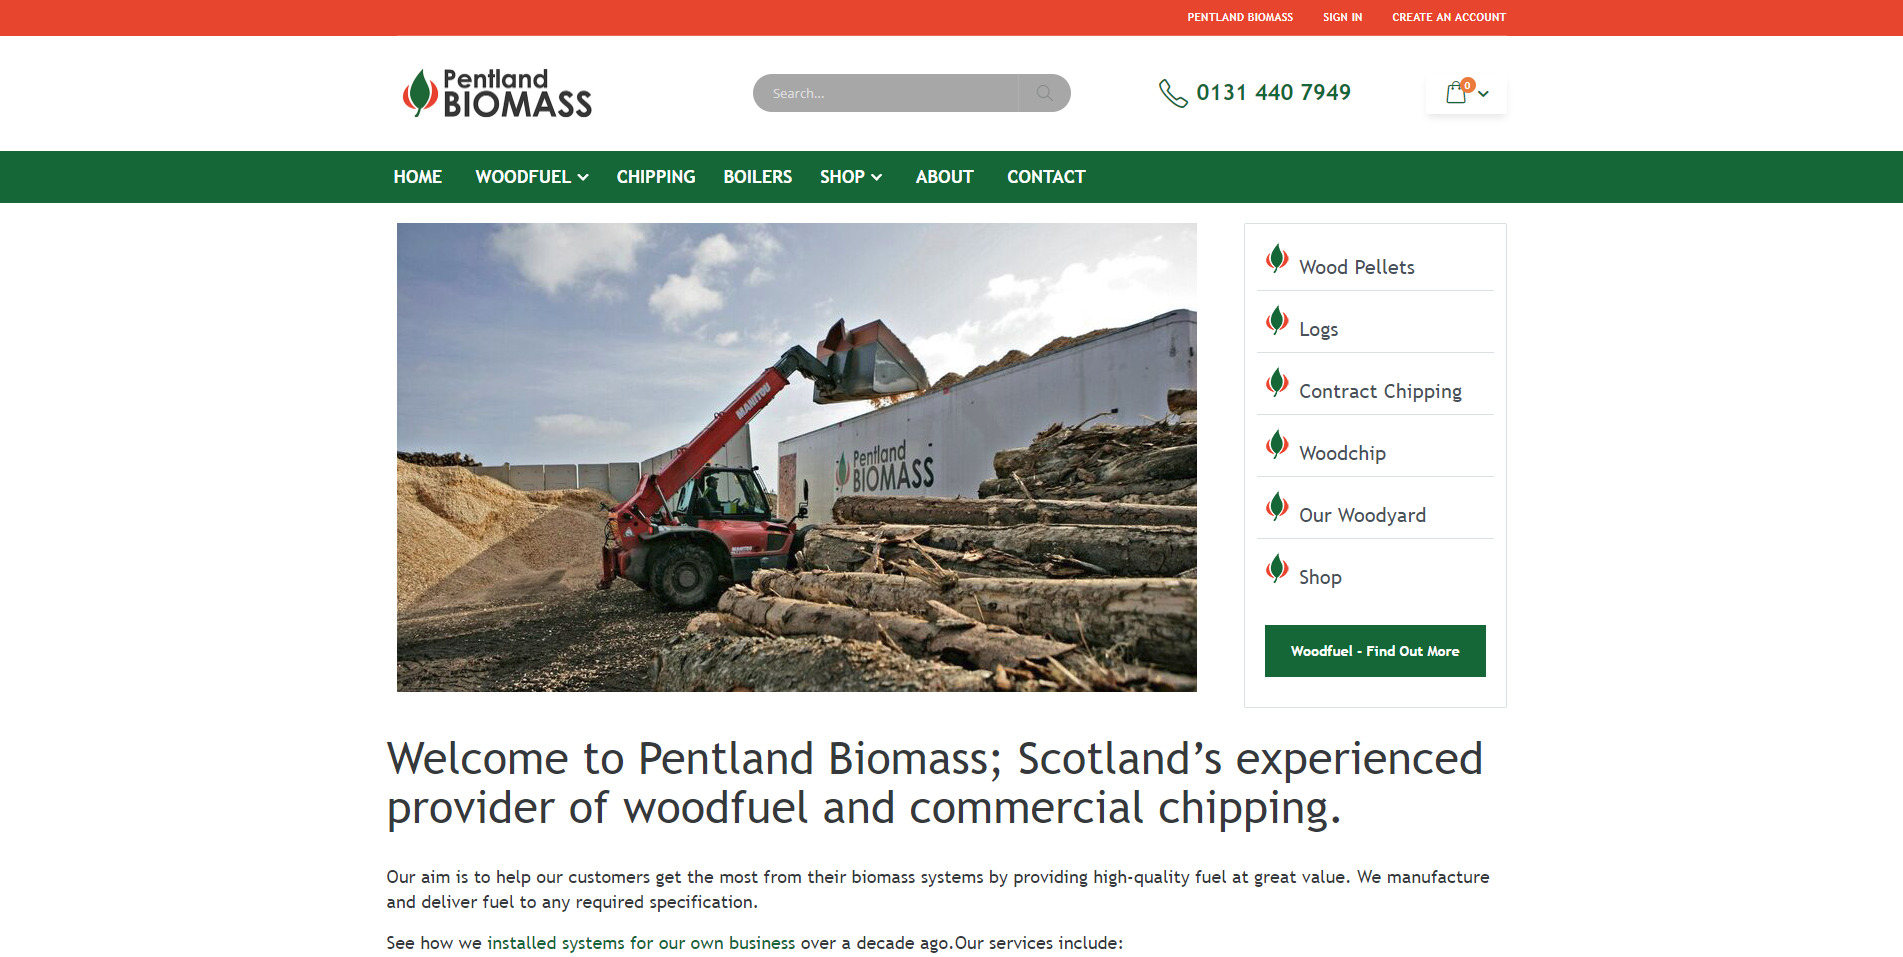 Pentland-Biomass-Homepage-Products-Section